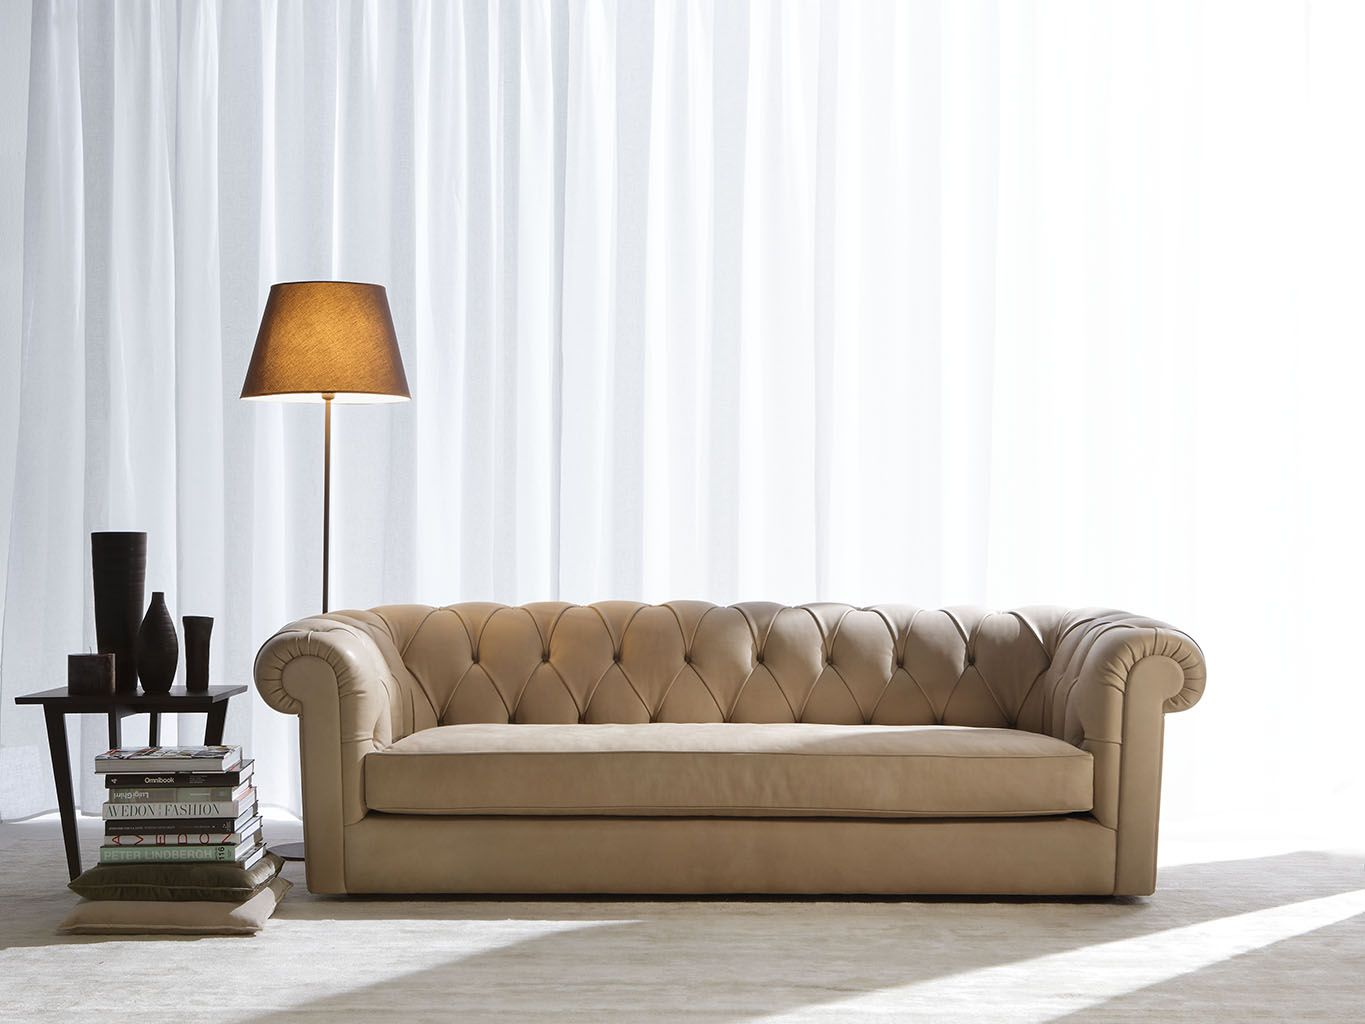 Boston Chesterfield Sofa Solid Wood Structure With Hand Tied Steel Spring  Base. 20 Years Of